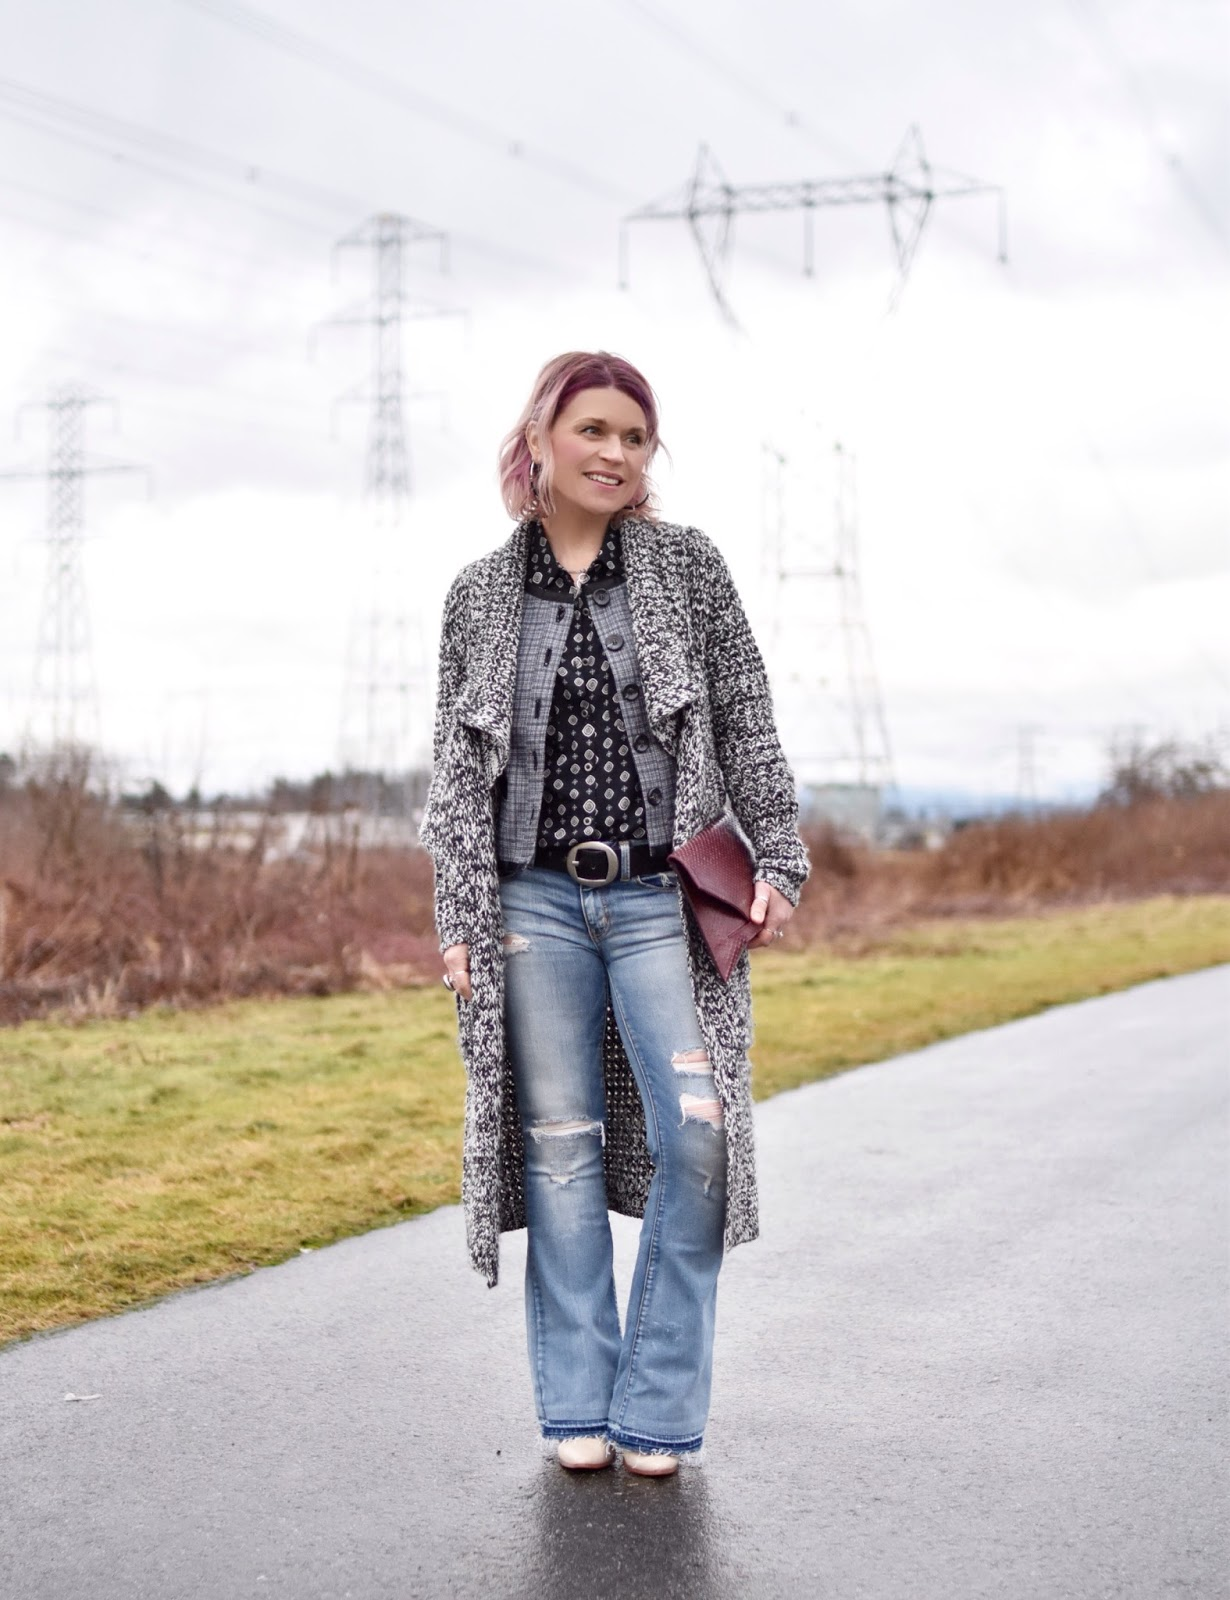 Monika Faulkner outfit inspiration - styling a patterned shirt with distressed flare jeans, a Chanel-inspired jacket, and a long cardigan